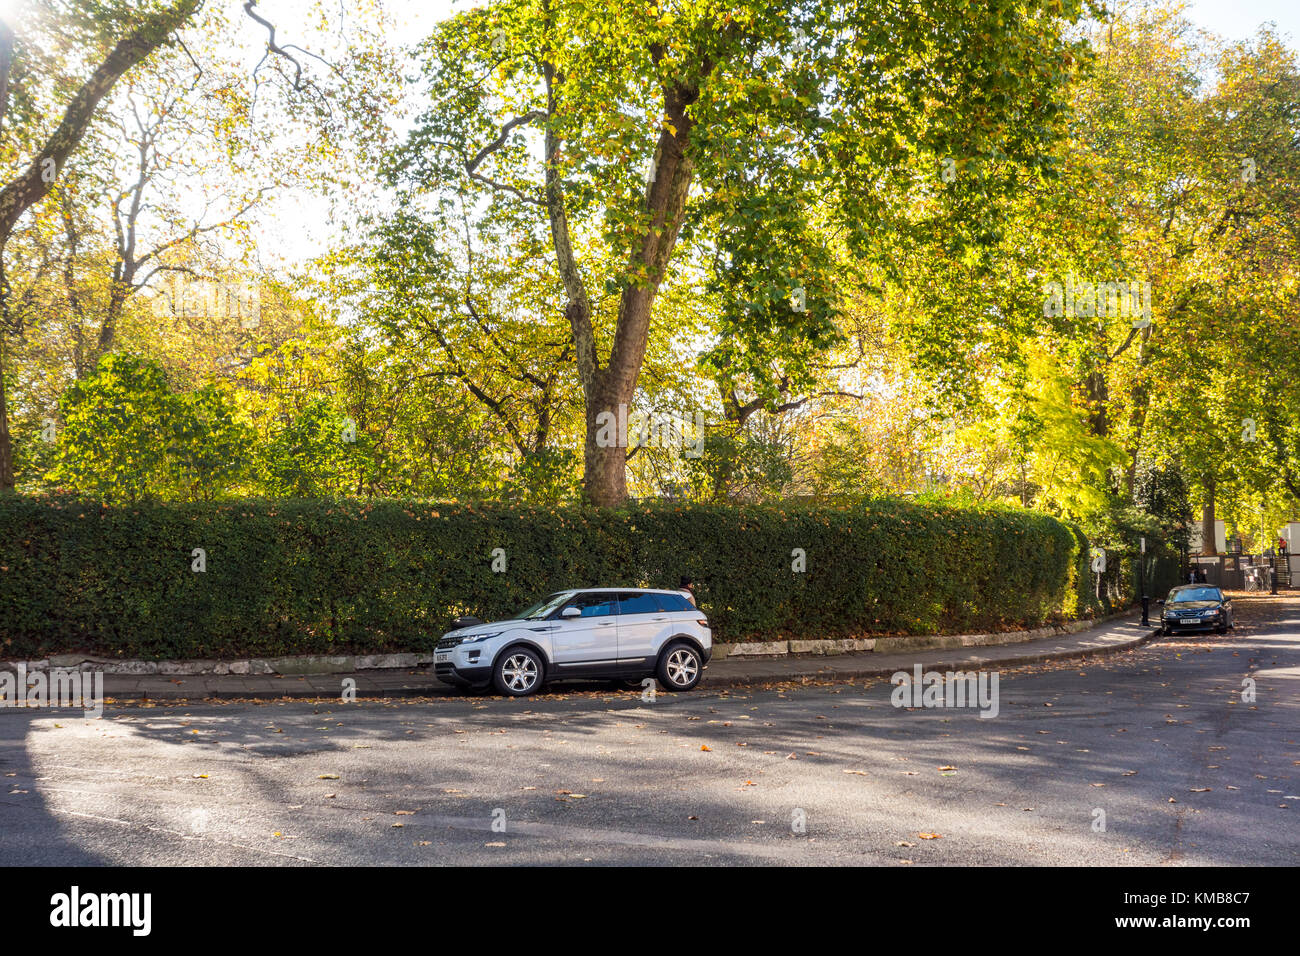 Early autum / fall / autumnal scene in Mecklenburgh Square with green trees and fallen leaves. Bloomsbury, London, - Stock Image